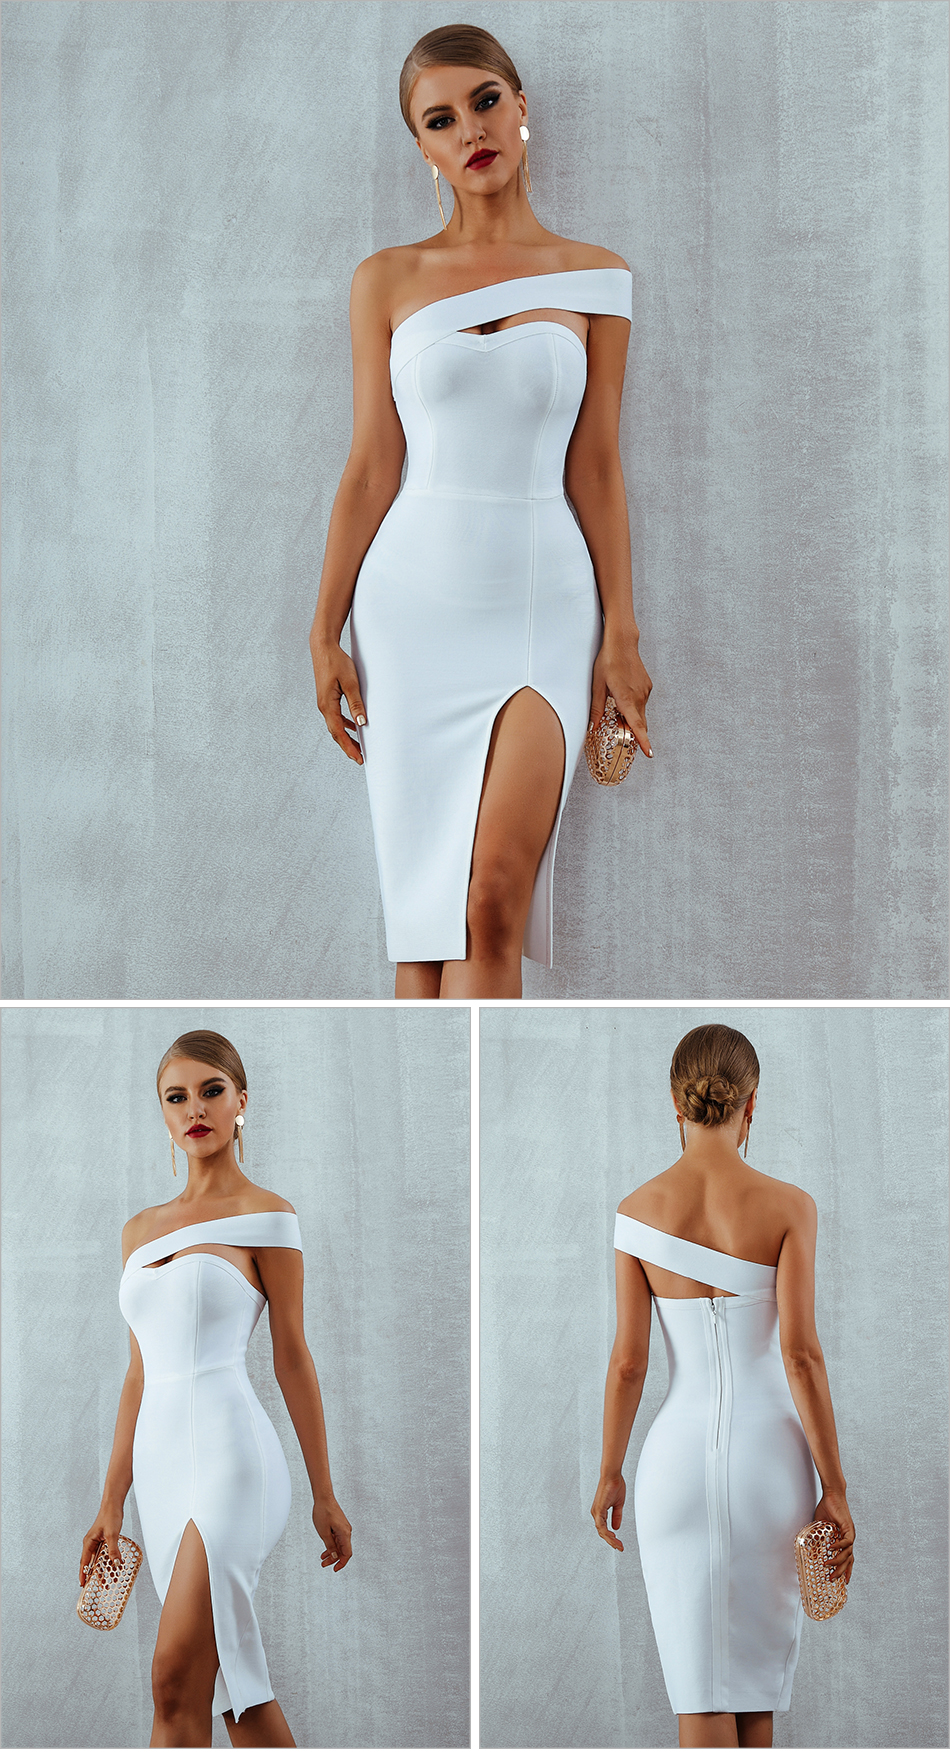 HTB19m9uEbGYBuNjy0Foq6AiBFXag - Adyce White Bodycon Bandage Dress Women Vestidos Summer Sexy Elegant Black One Shoulder Midi Celebrity Runway Party Dresses